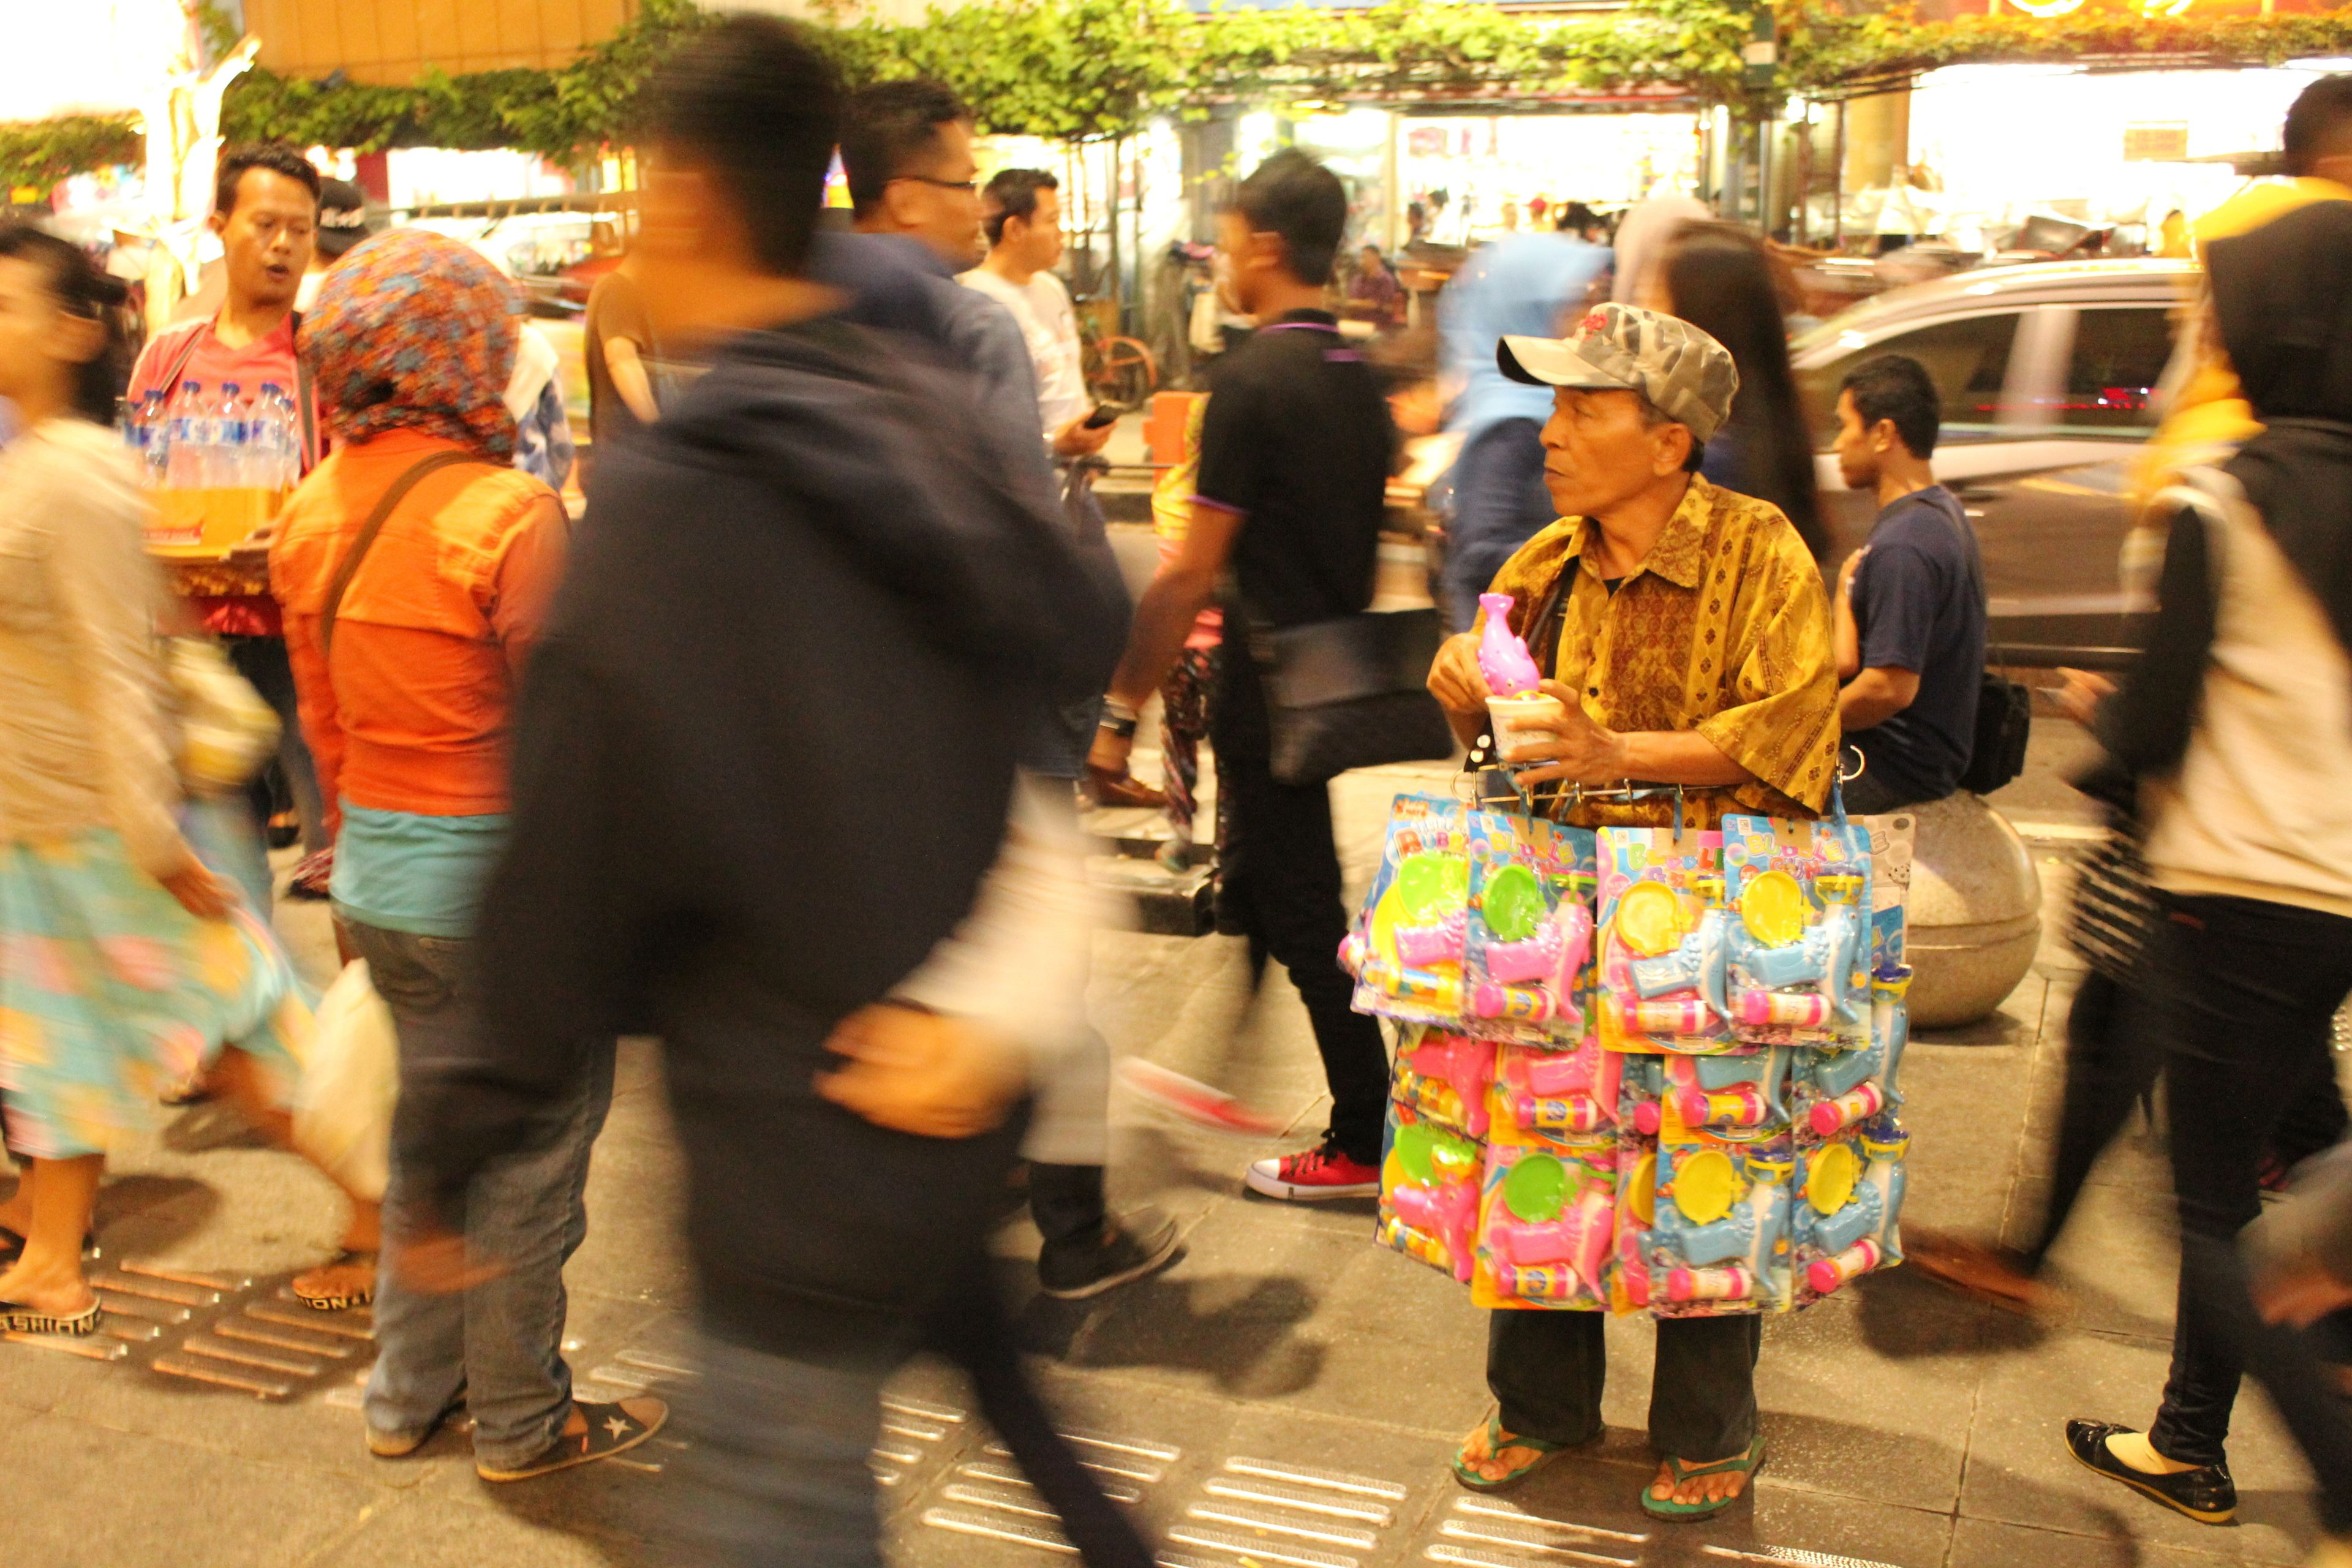 Street view of the Yogyakarta Night Food Tour